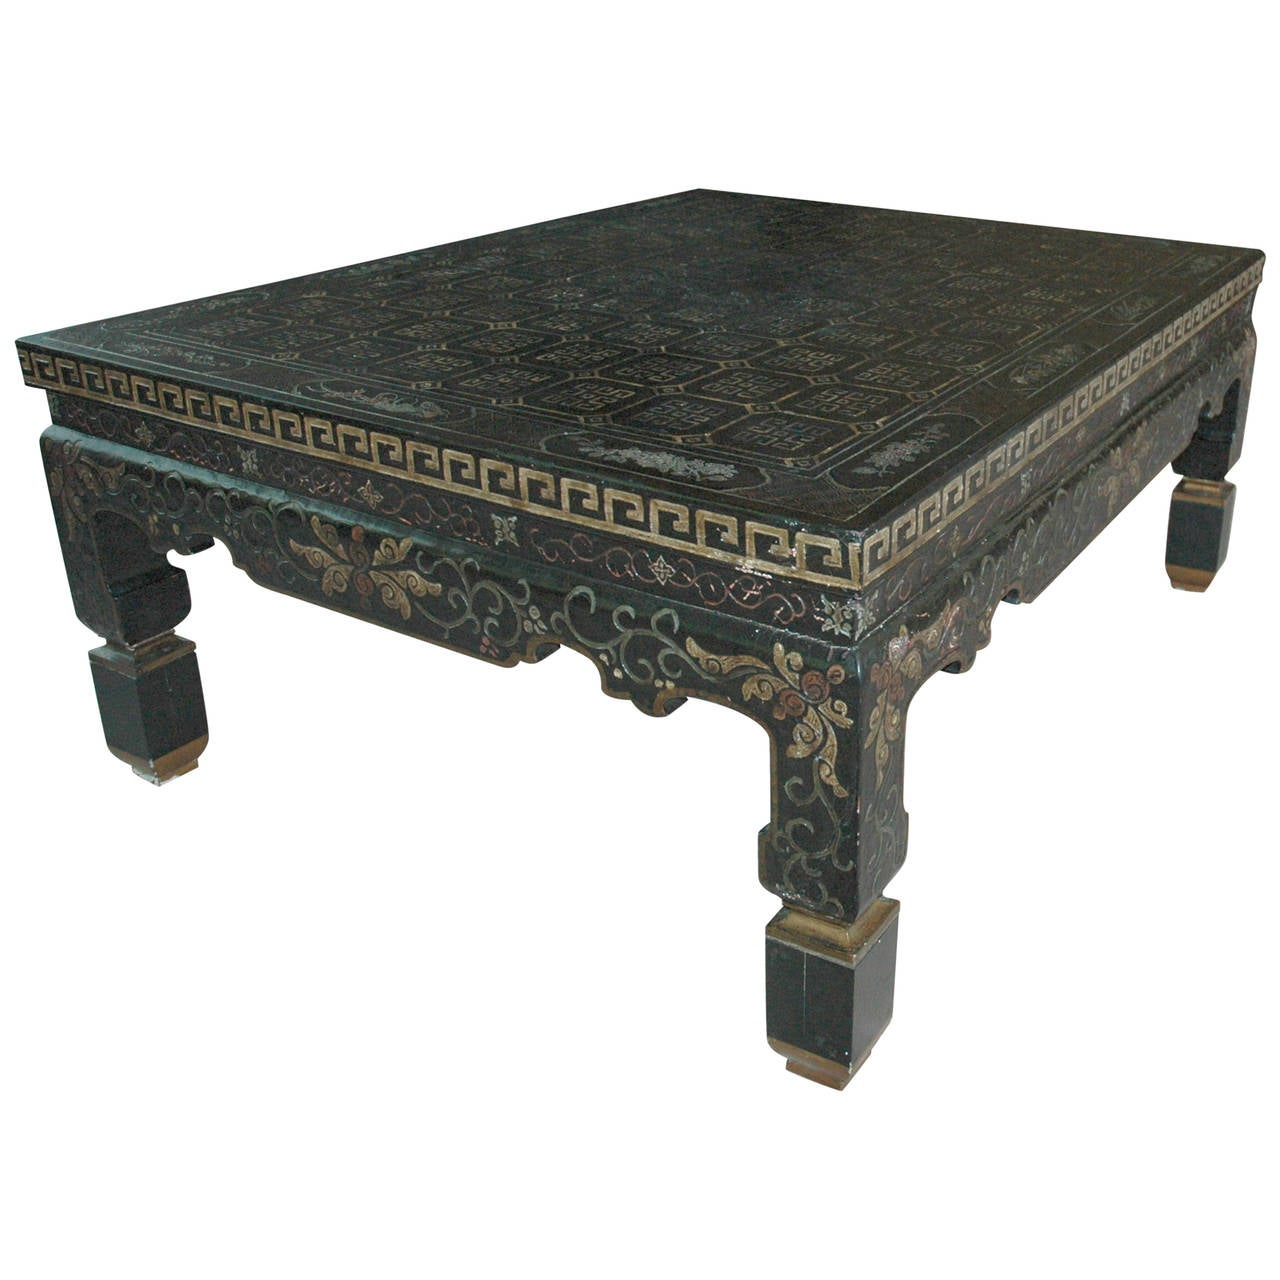 Superbe Baker Chinoiserie Black Lacquered Coffee Table With Greek Key Decoration  For Sale